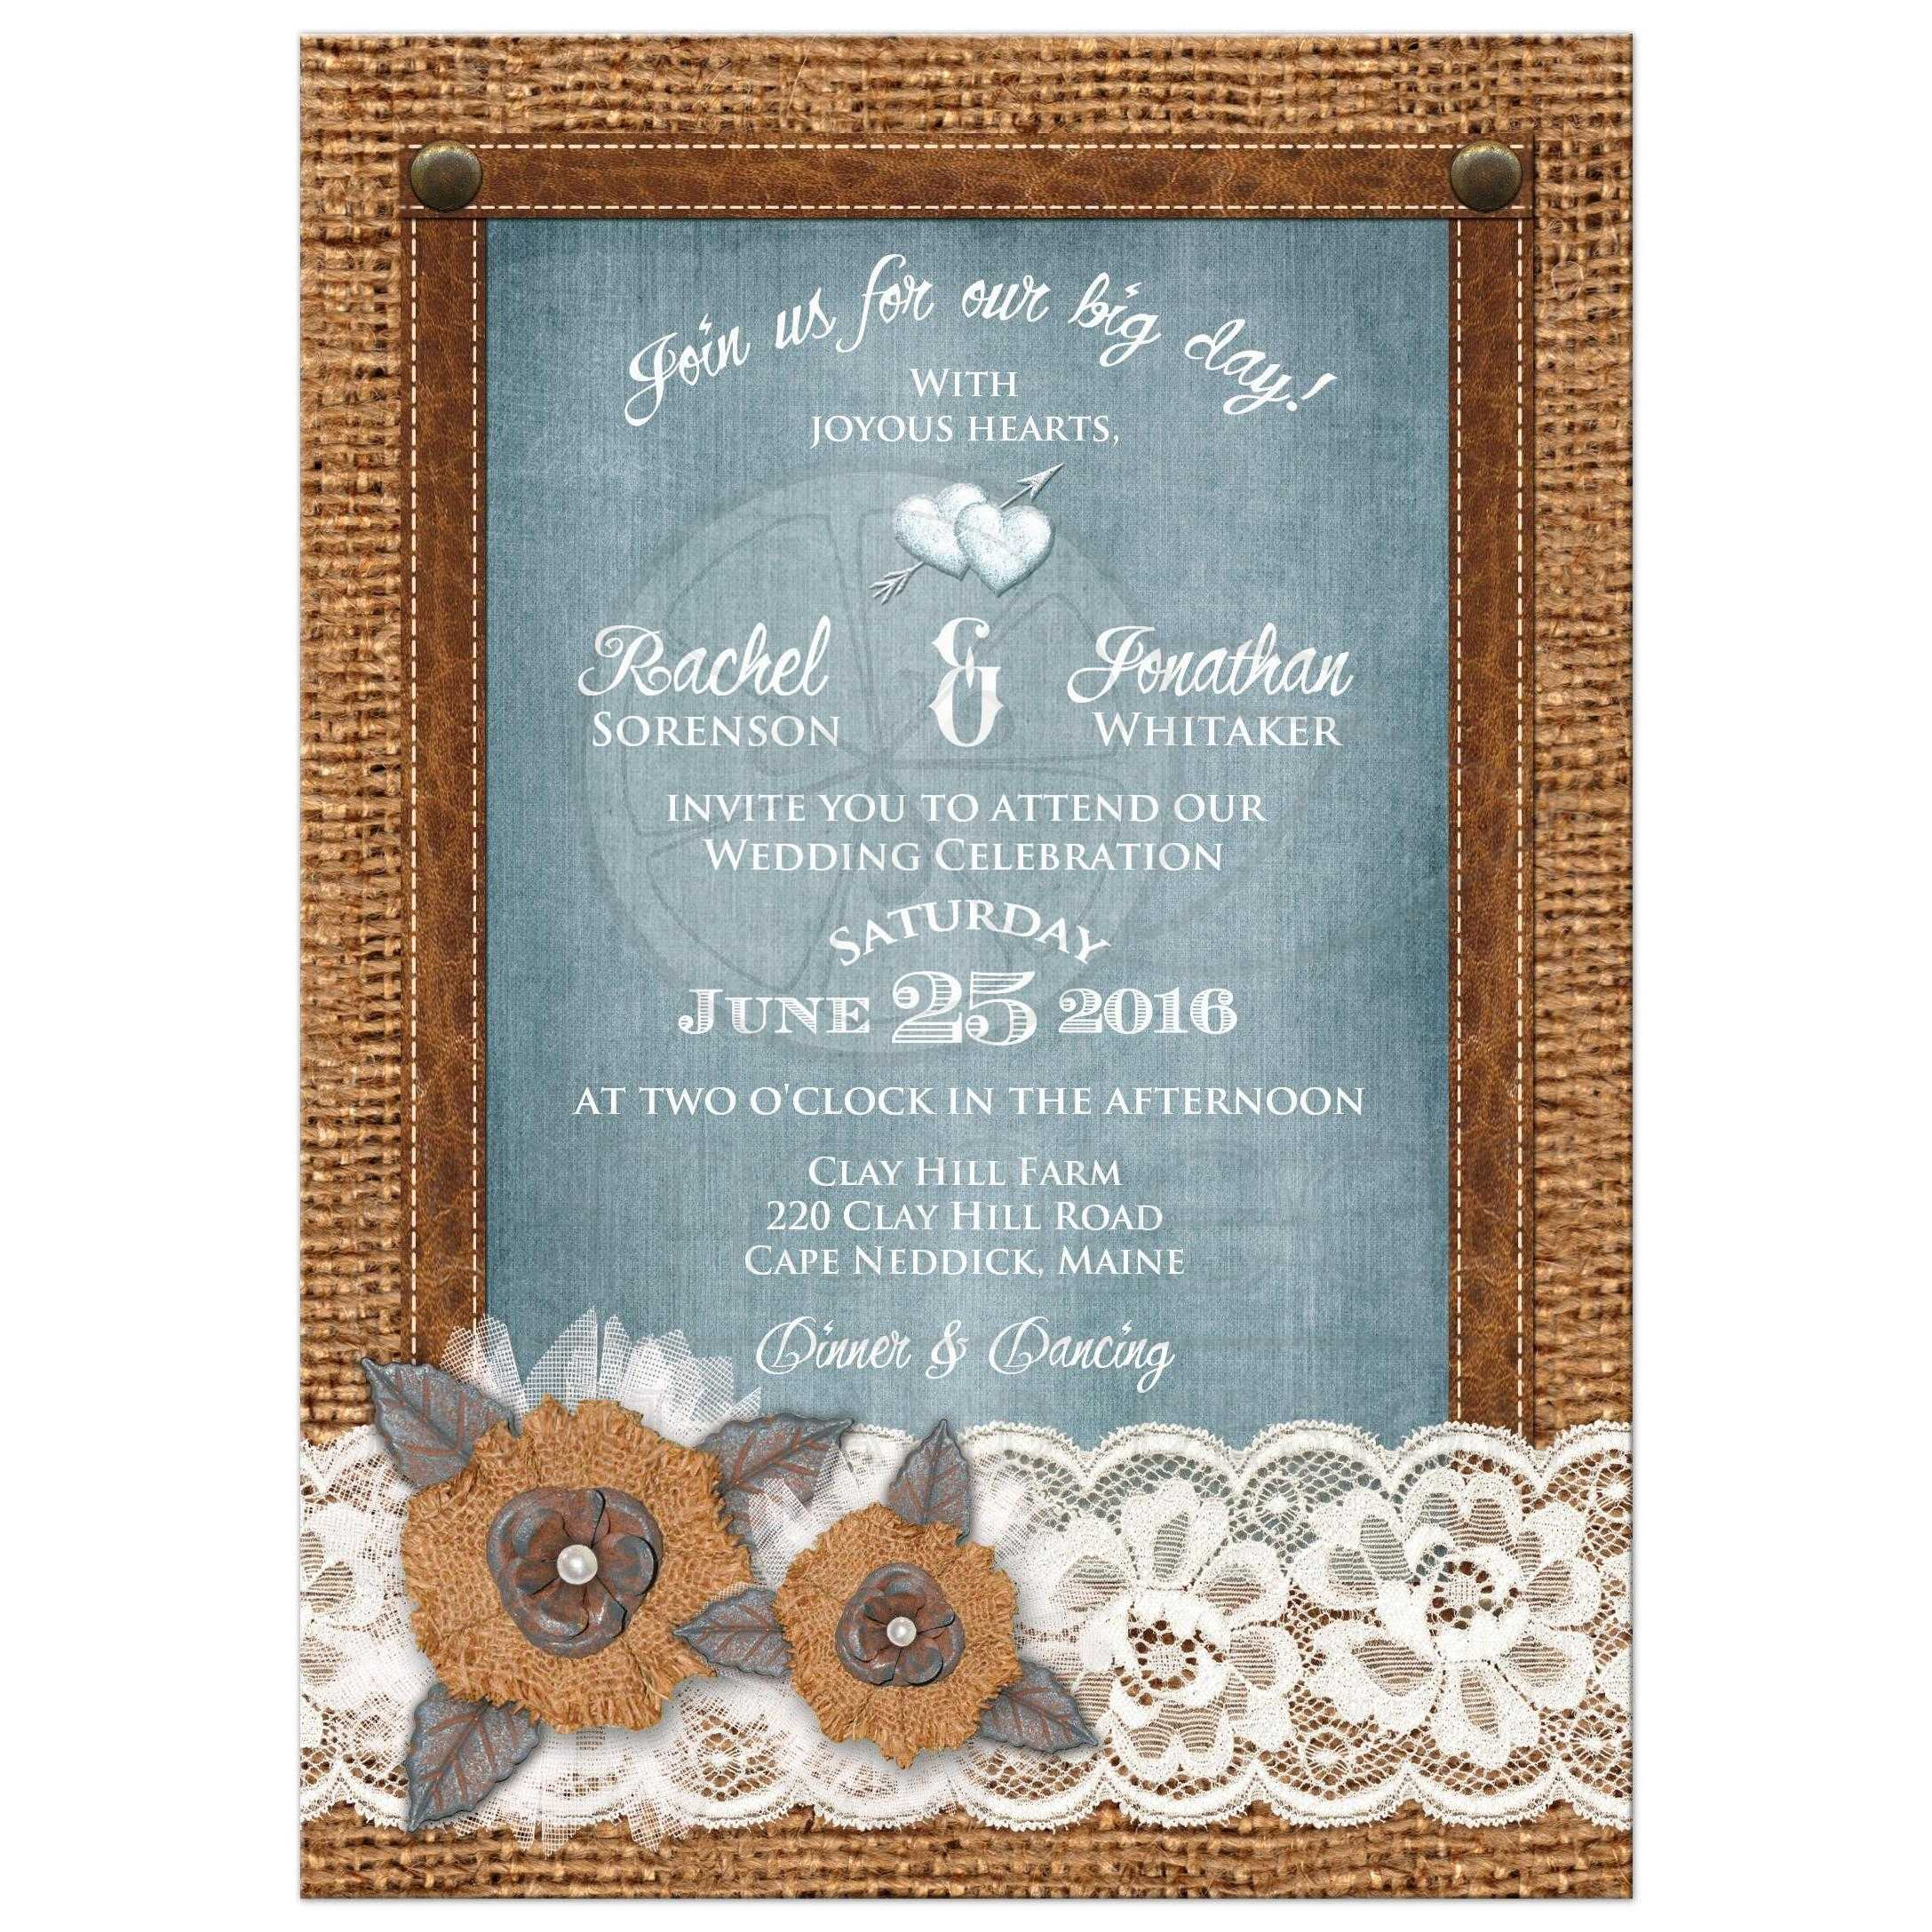 Rustic Wedding Invitation Burlap Lace Denim Leather Metal